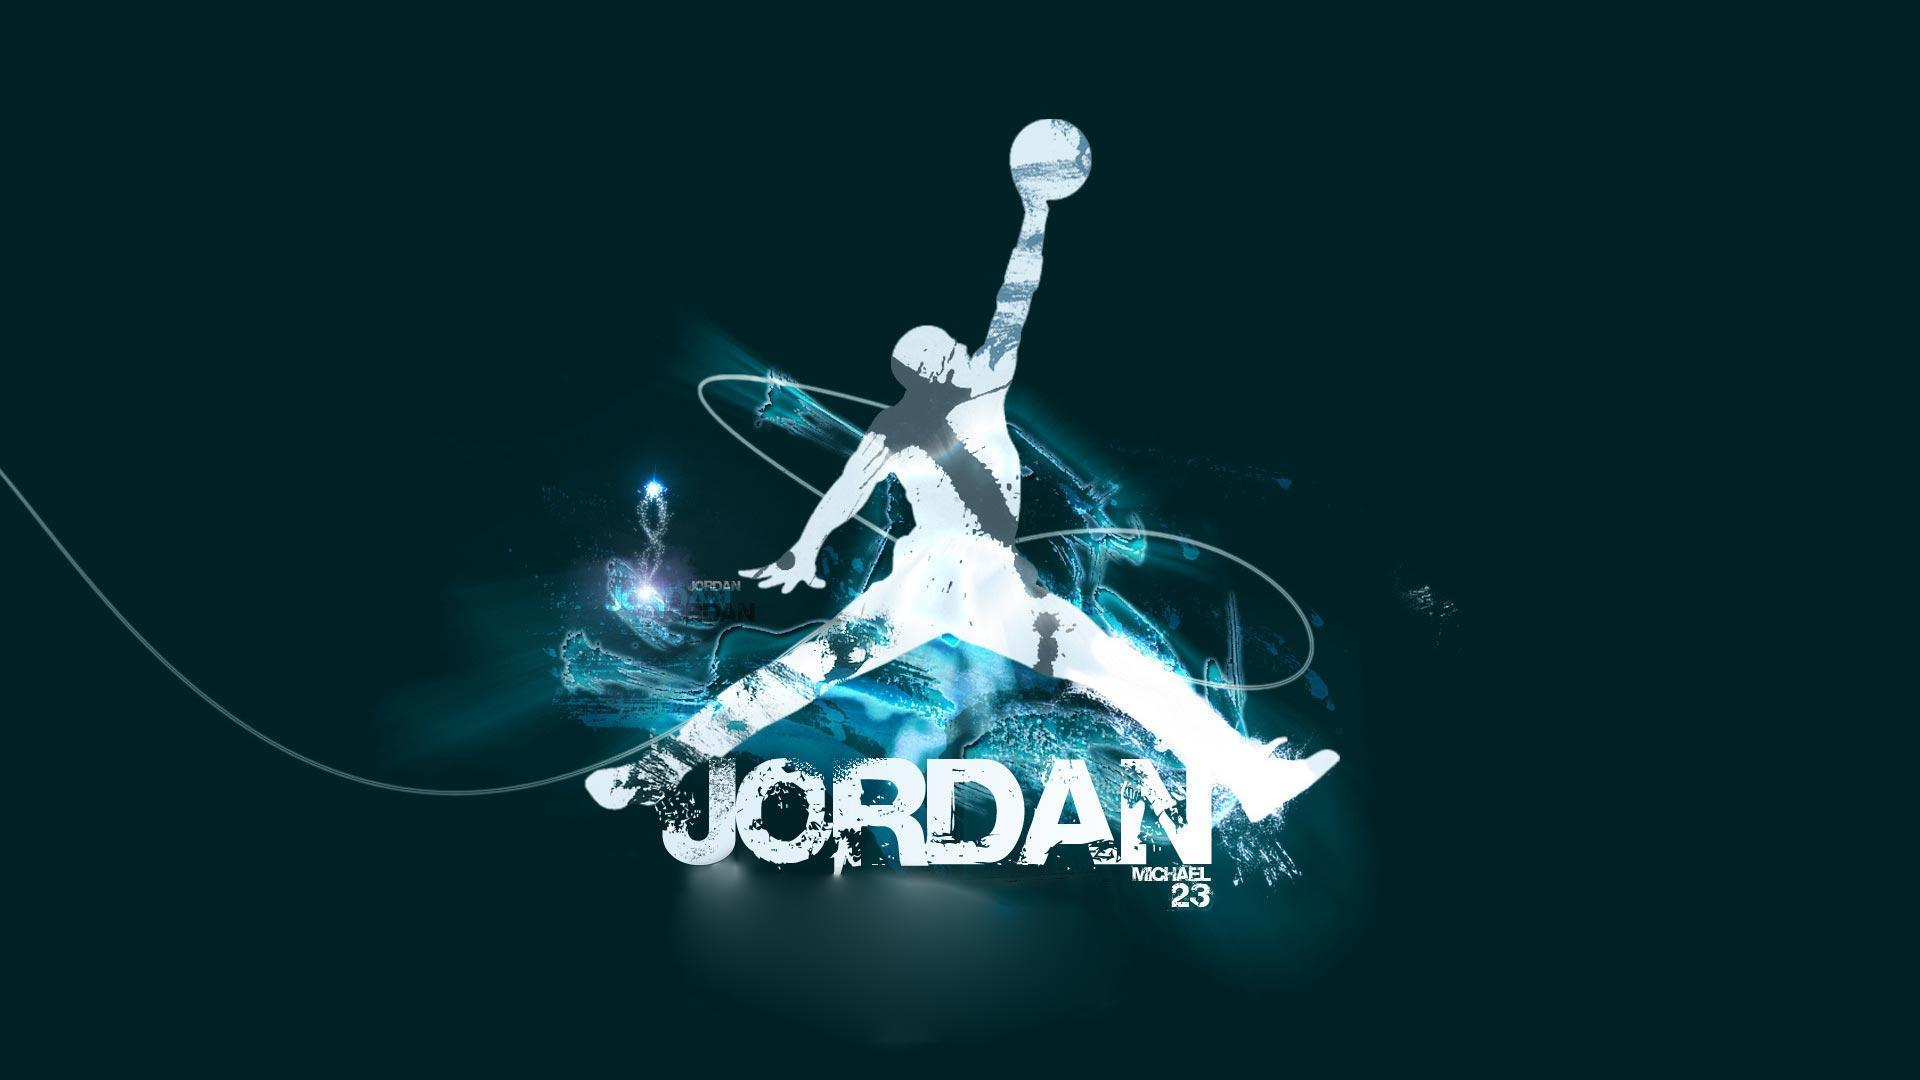 Michael Jordan Pc Wallpaper: Michael Jordan Wallpapers 1920x1080